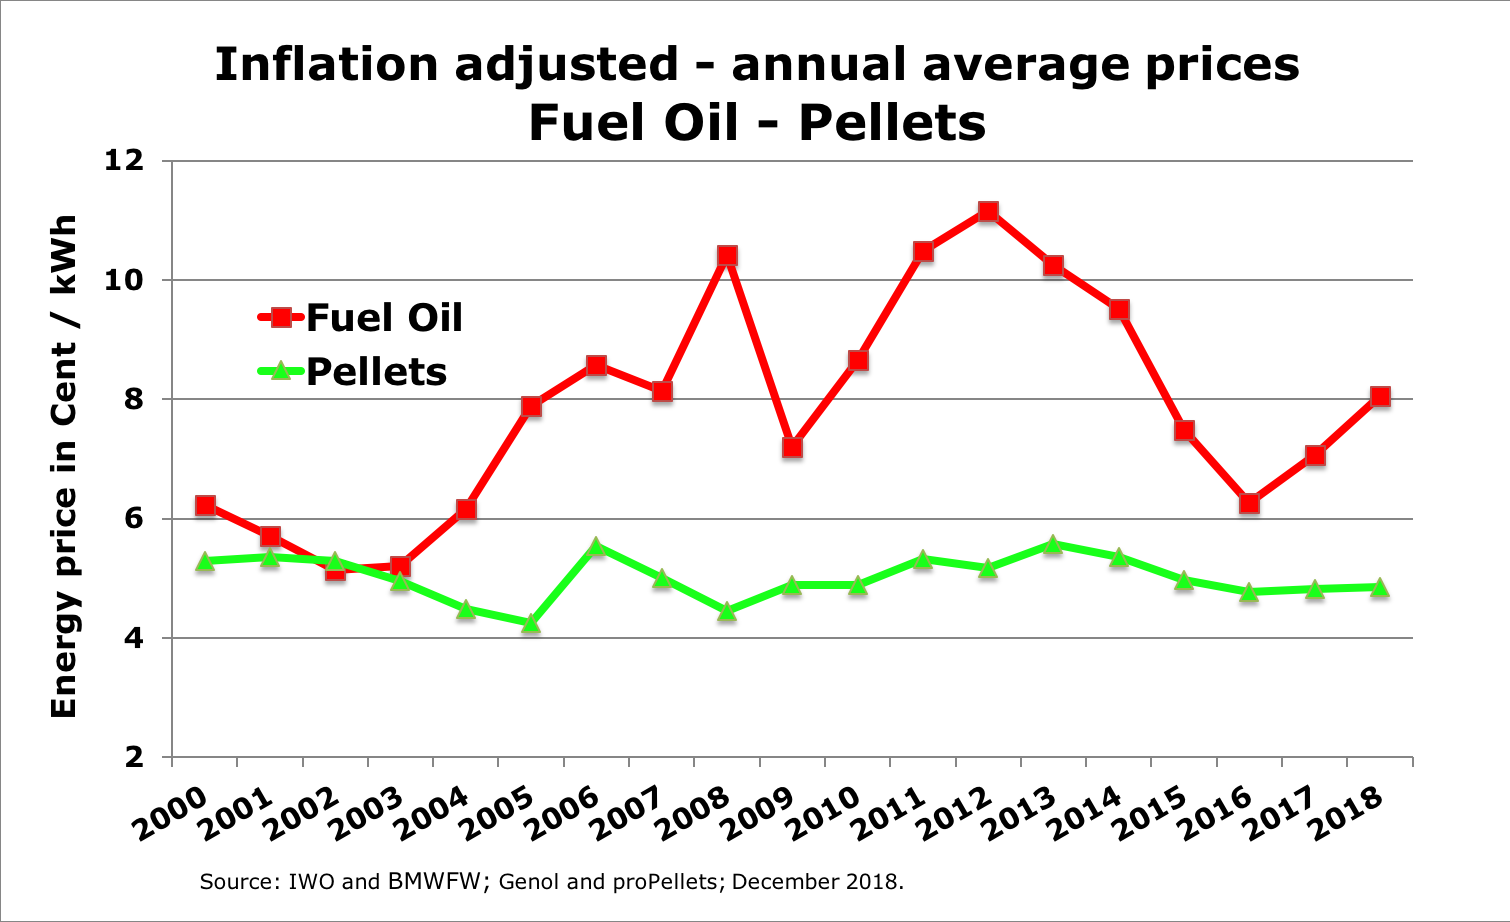 Inflation adjusted prices for fuel oil and pellets - December 2018